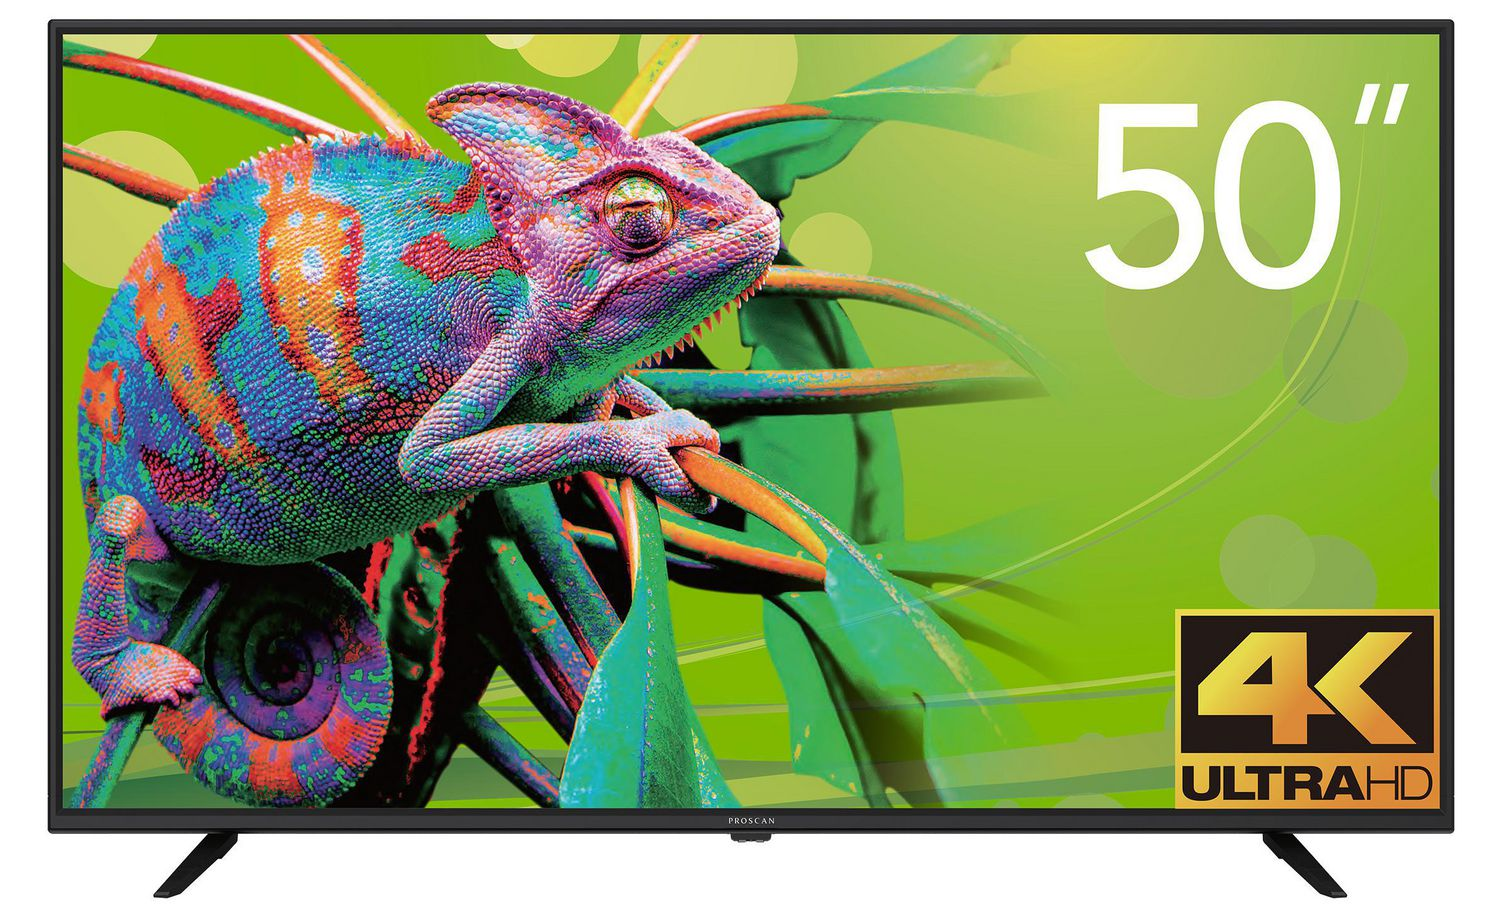 "Proscan 50"" 4K UHD Smart TV, ( PLED5038-UHDSM)"